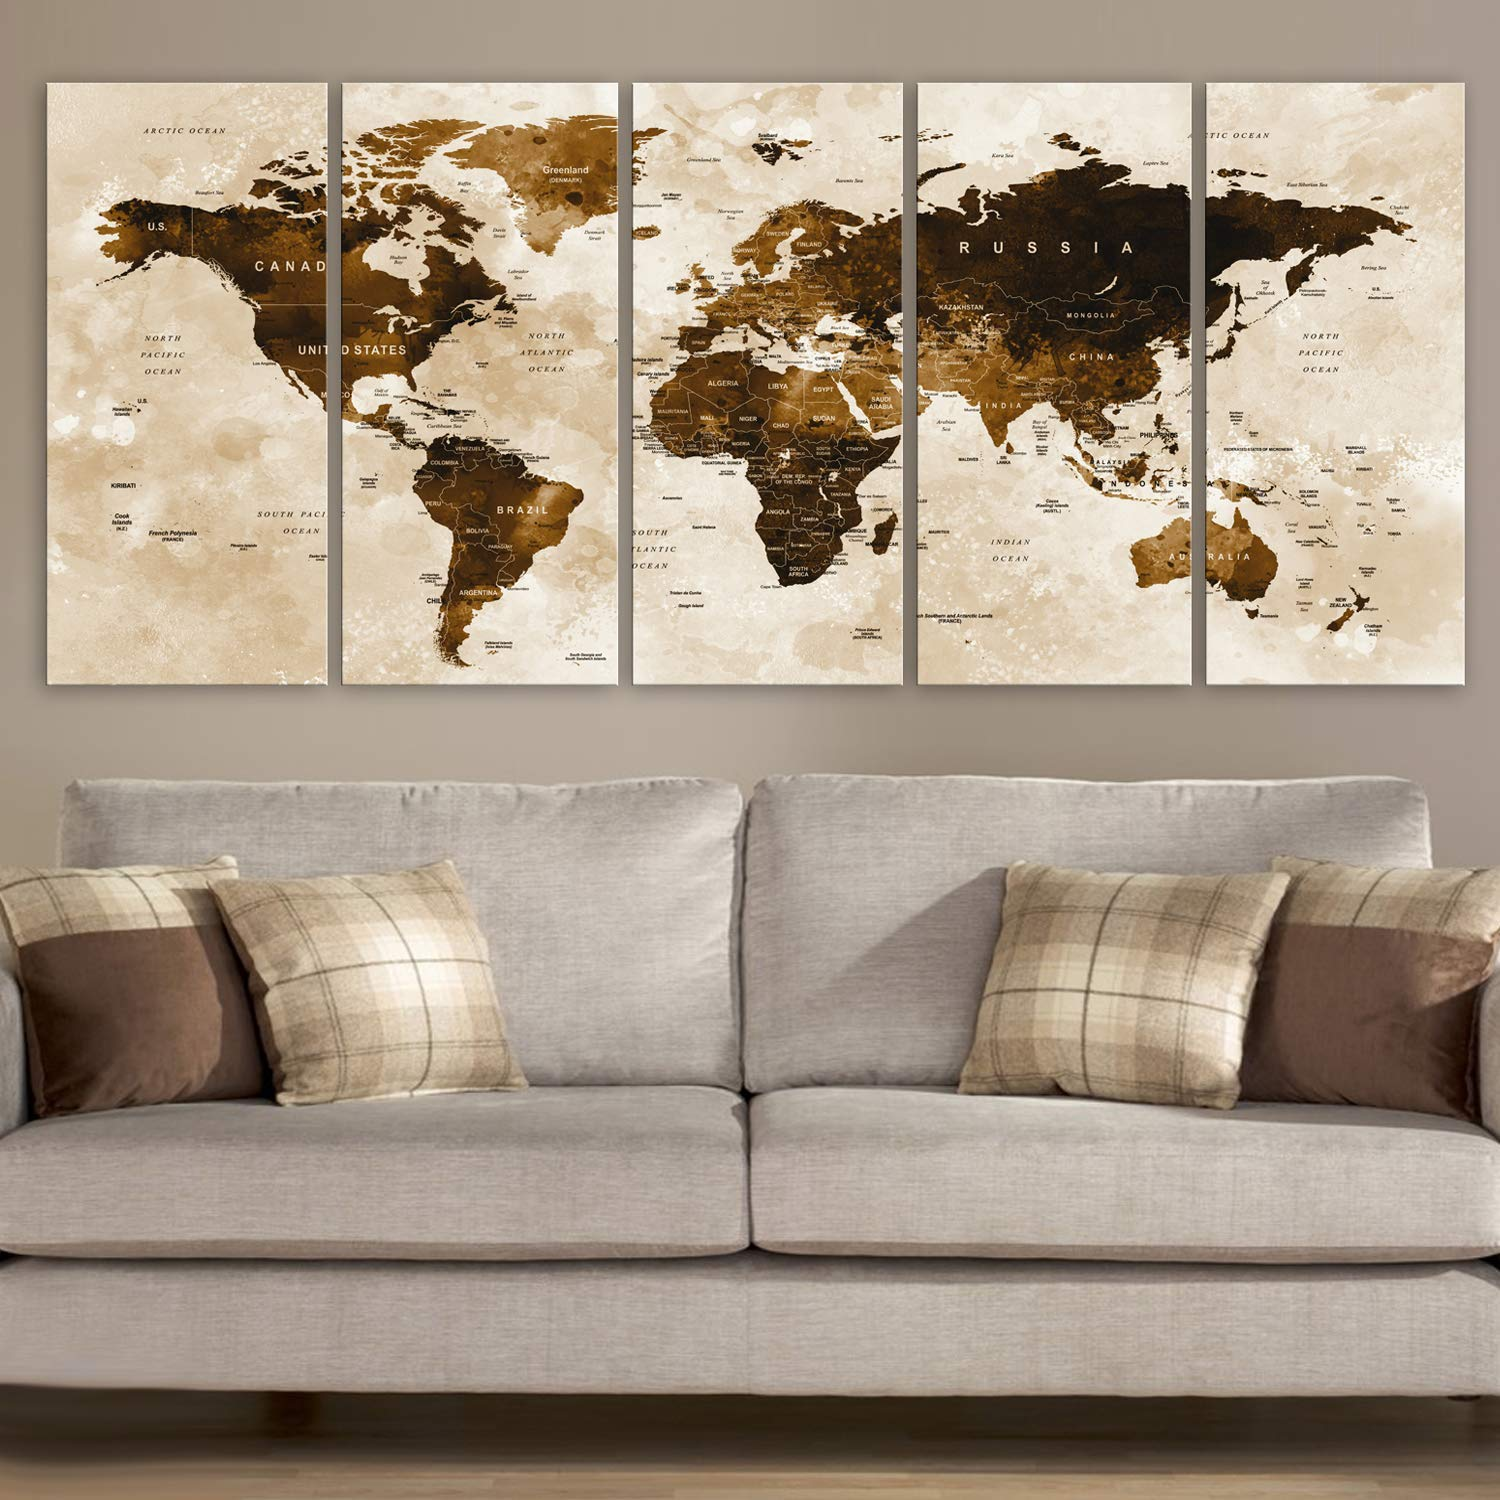 "Original by BoxColors Xlarge 30""x 70"" 5 Panels 30x14 Ea Art Canvas Print Watercolor Brown Map World Push Pin Travel Wall decor Home (framed 1.5"" depth) M1801"